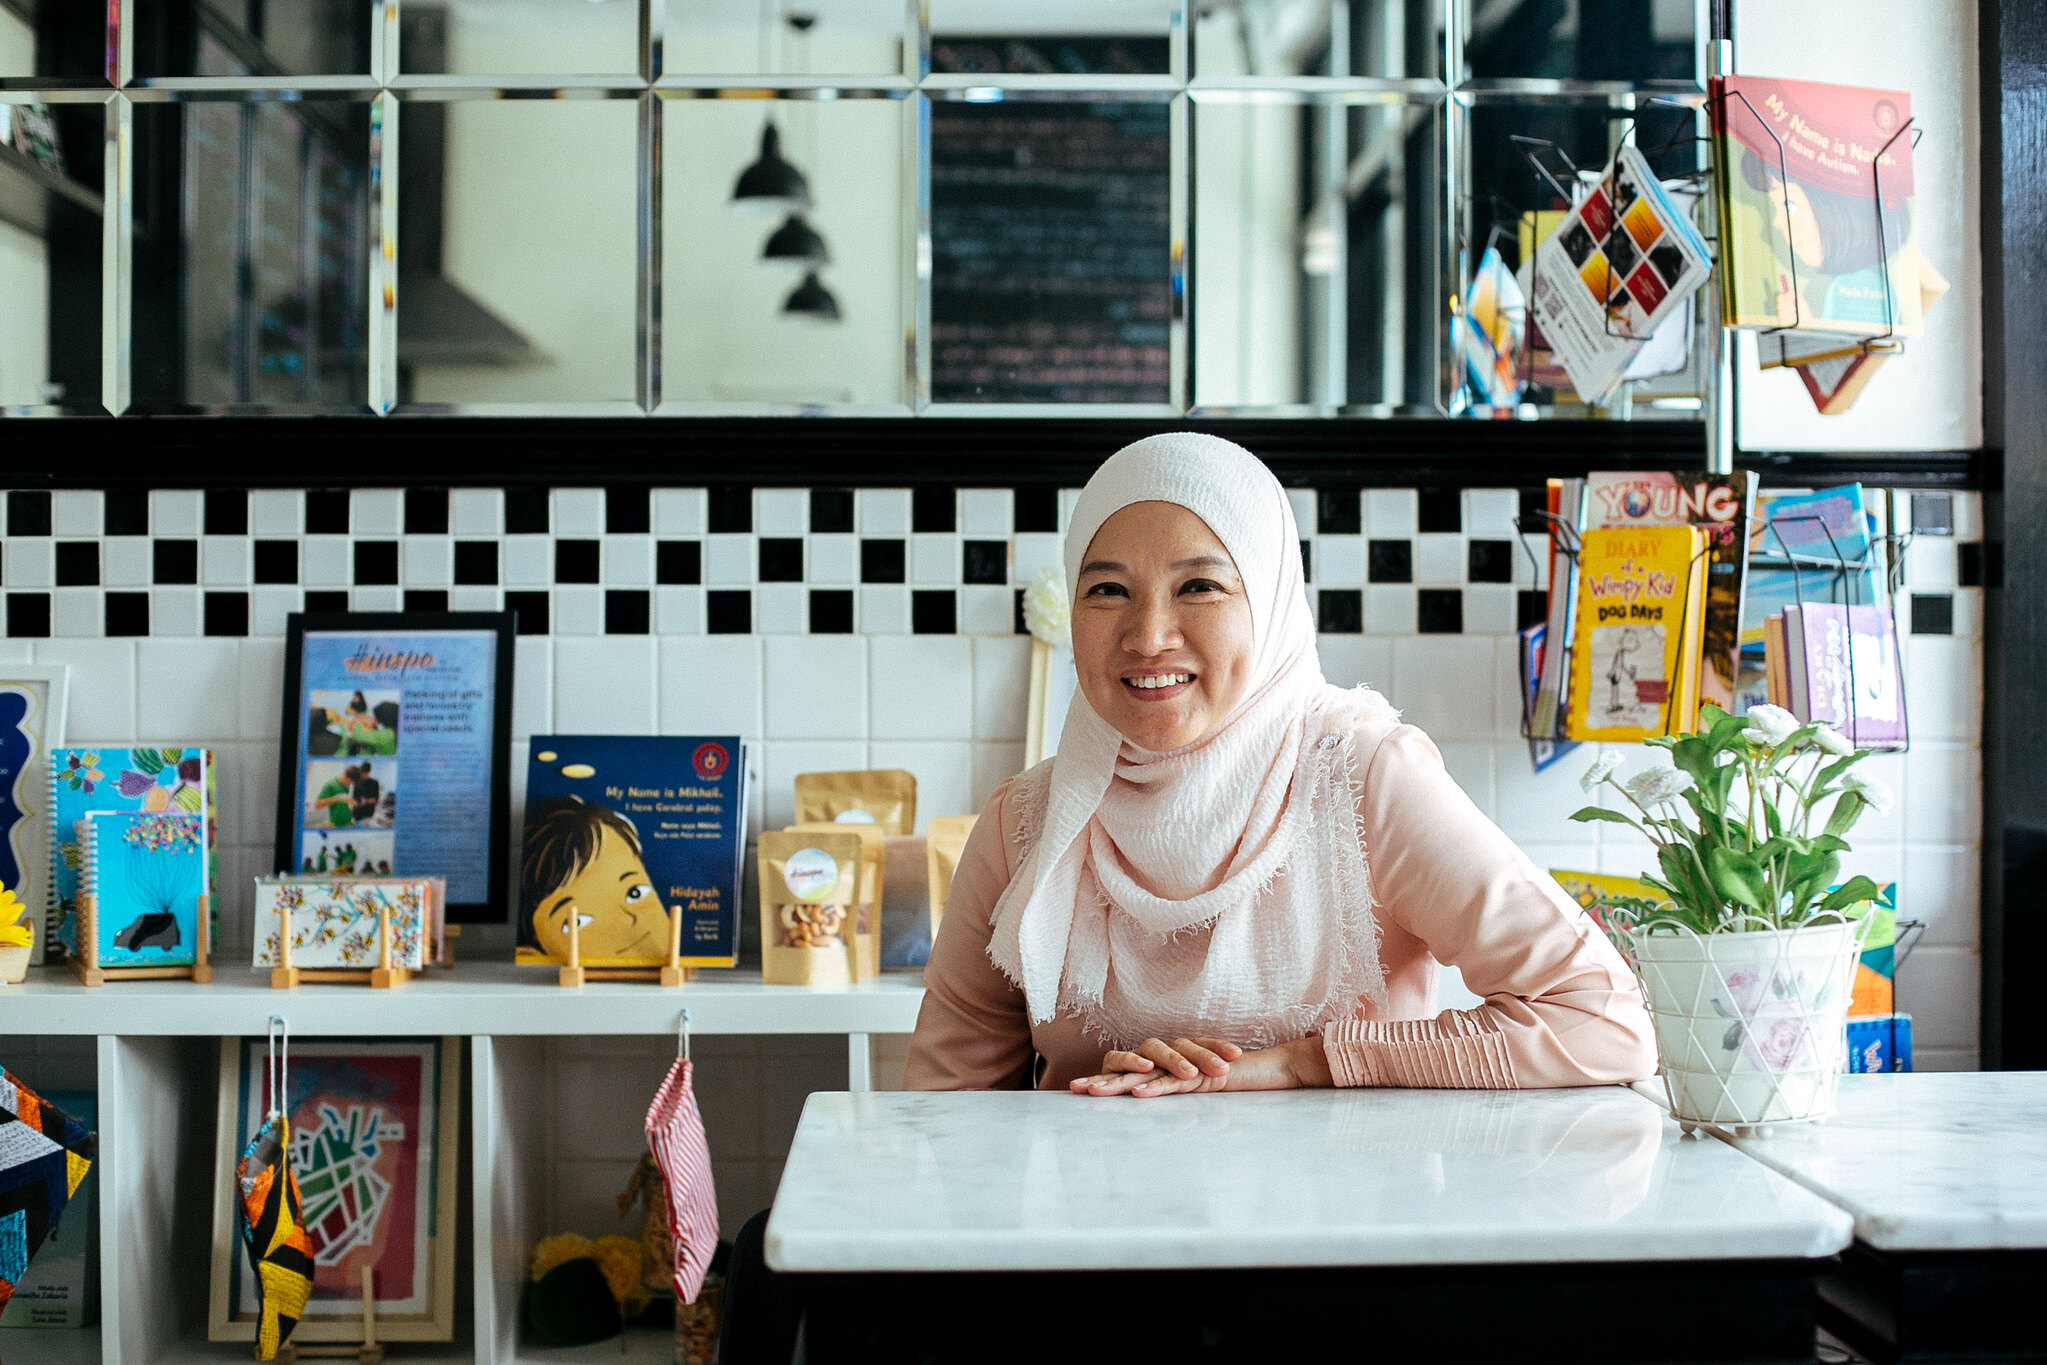 Career Feature: A Special Space, With Mdm Faraliza Of My Inspiring Journey